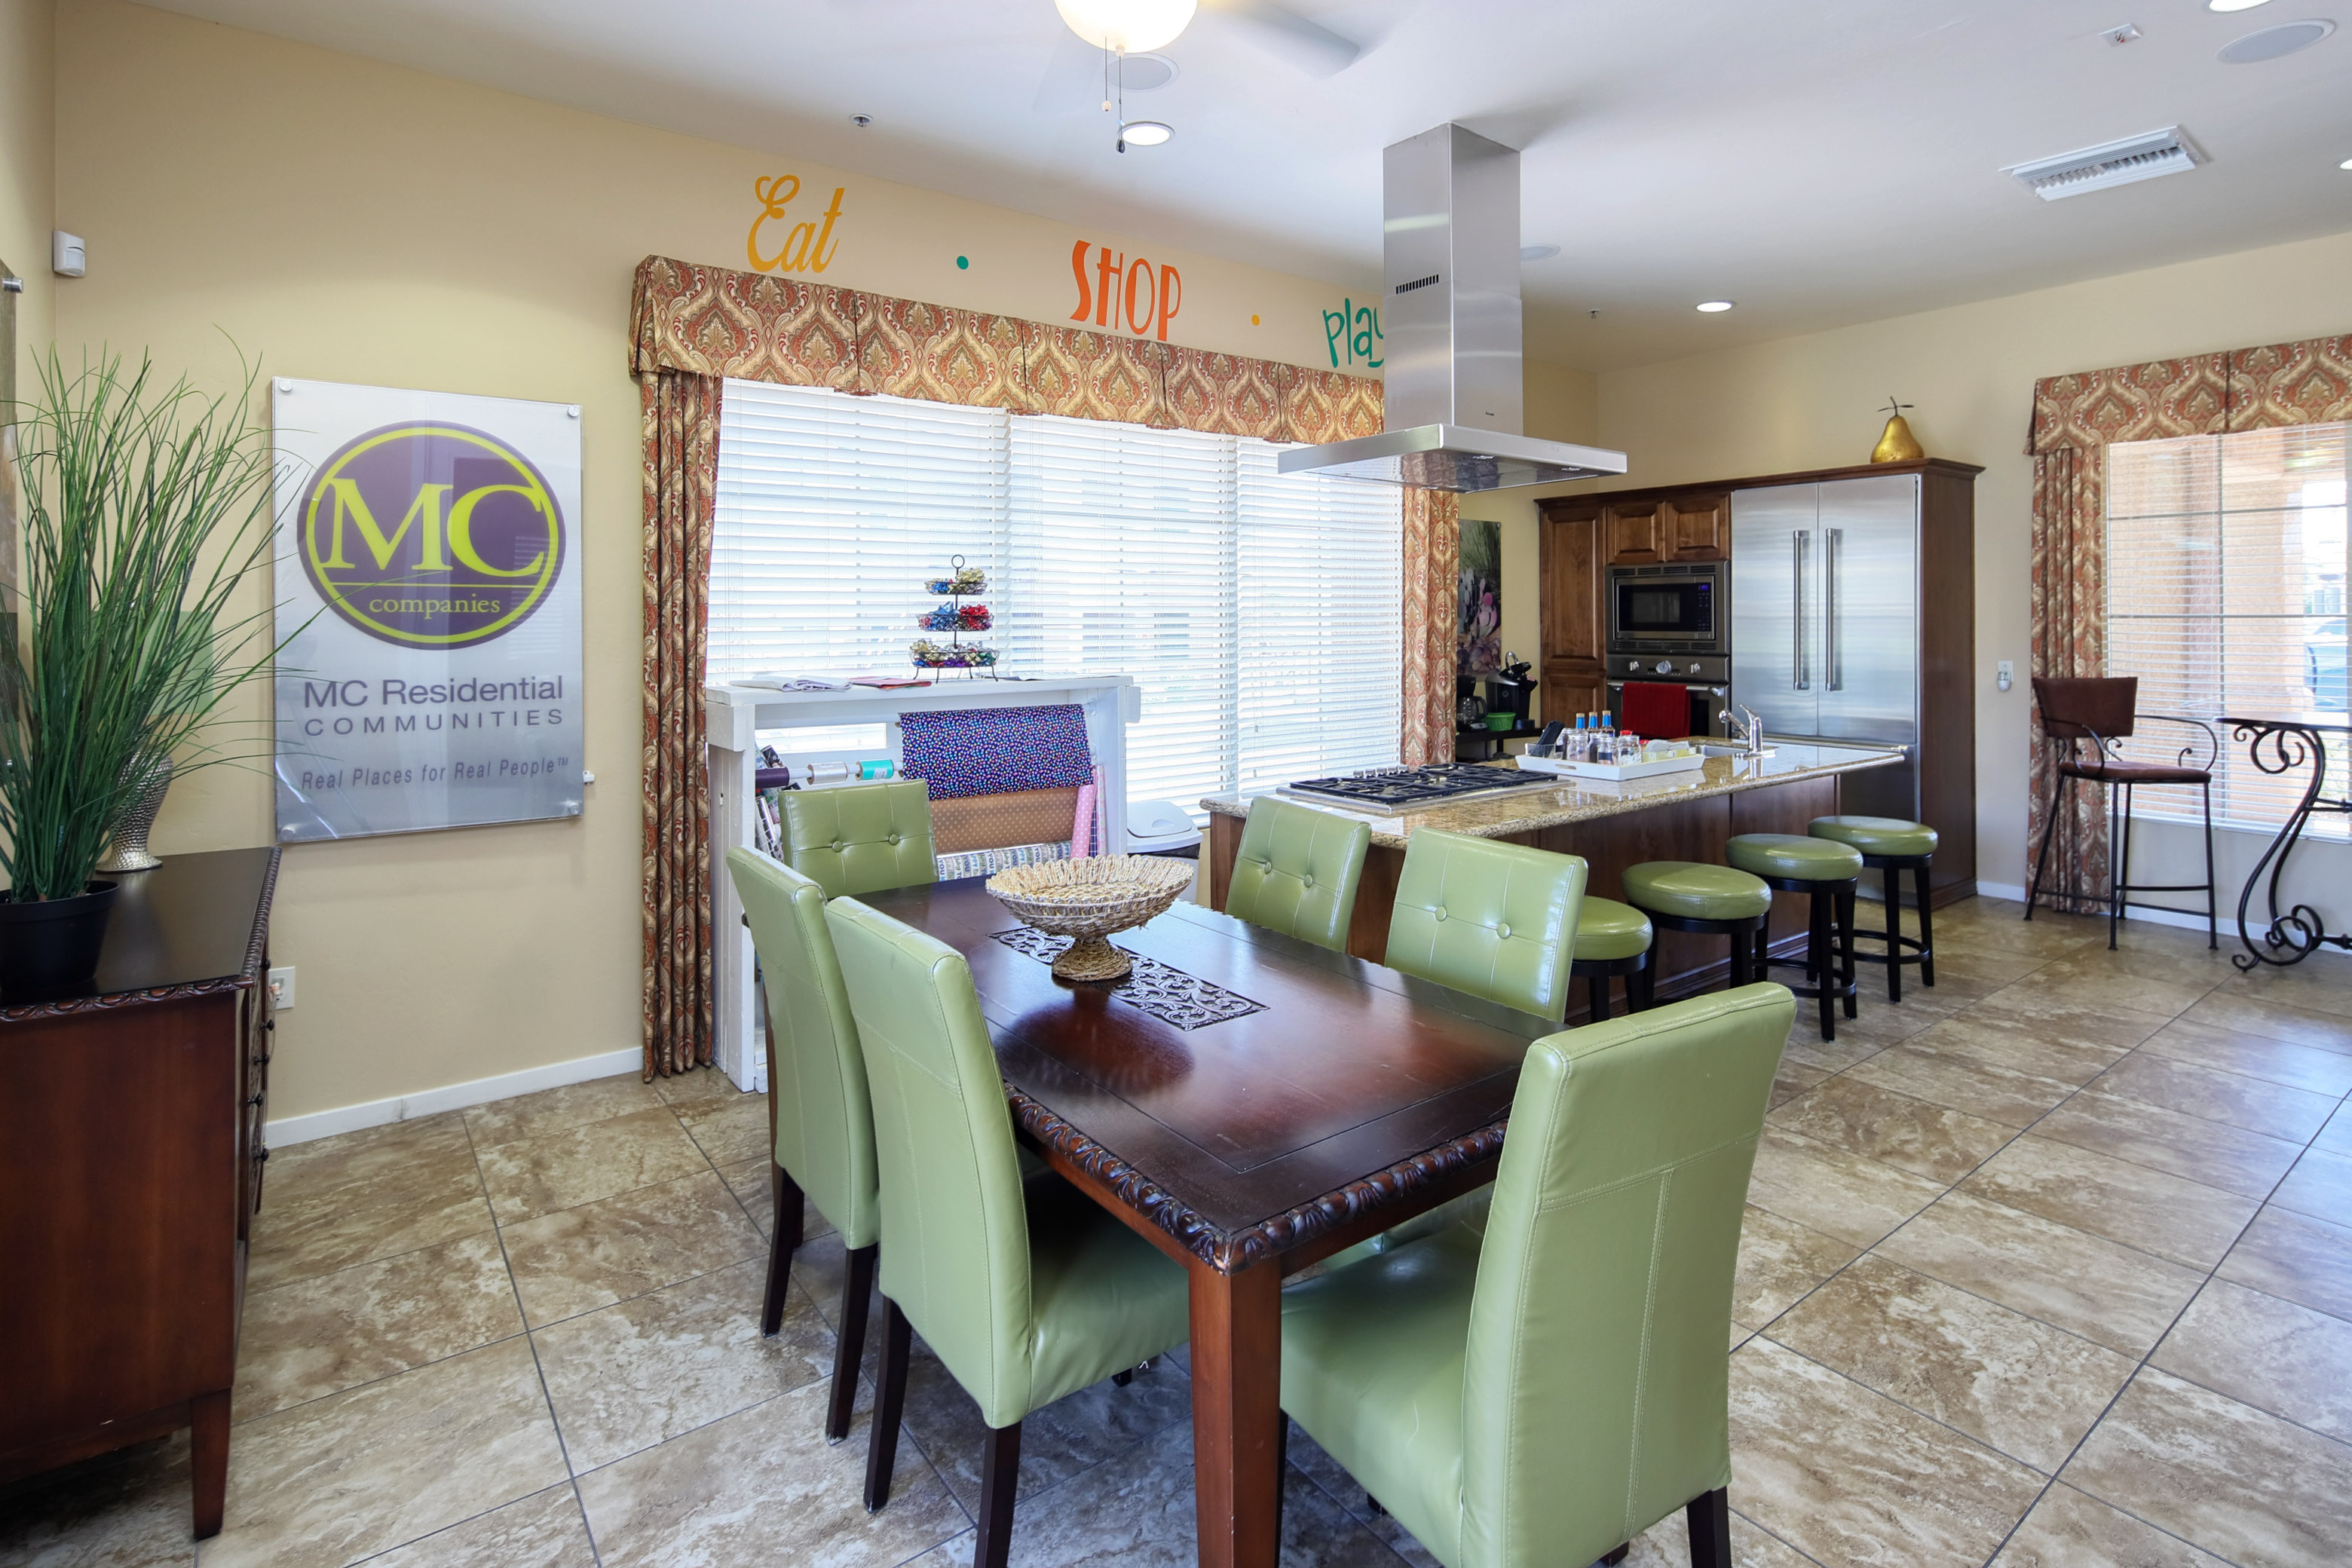 upscale clubhouse and gathering space with full hosting kitchen